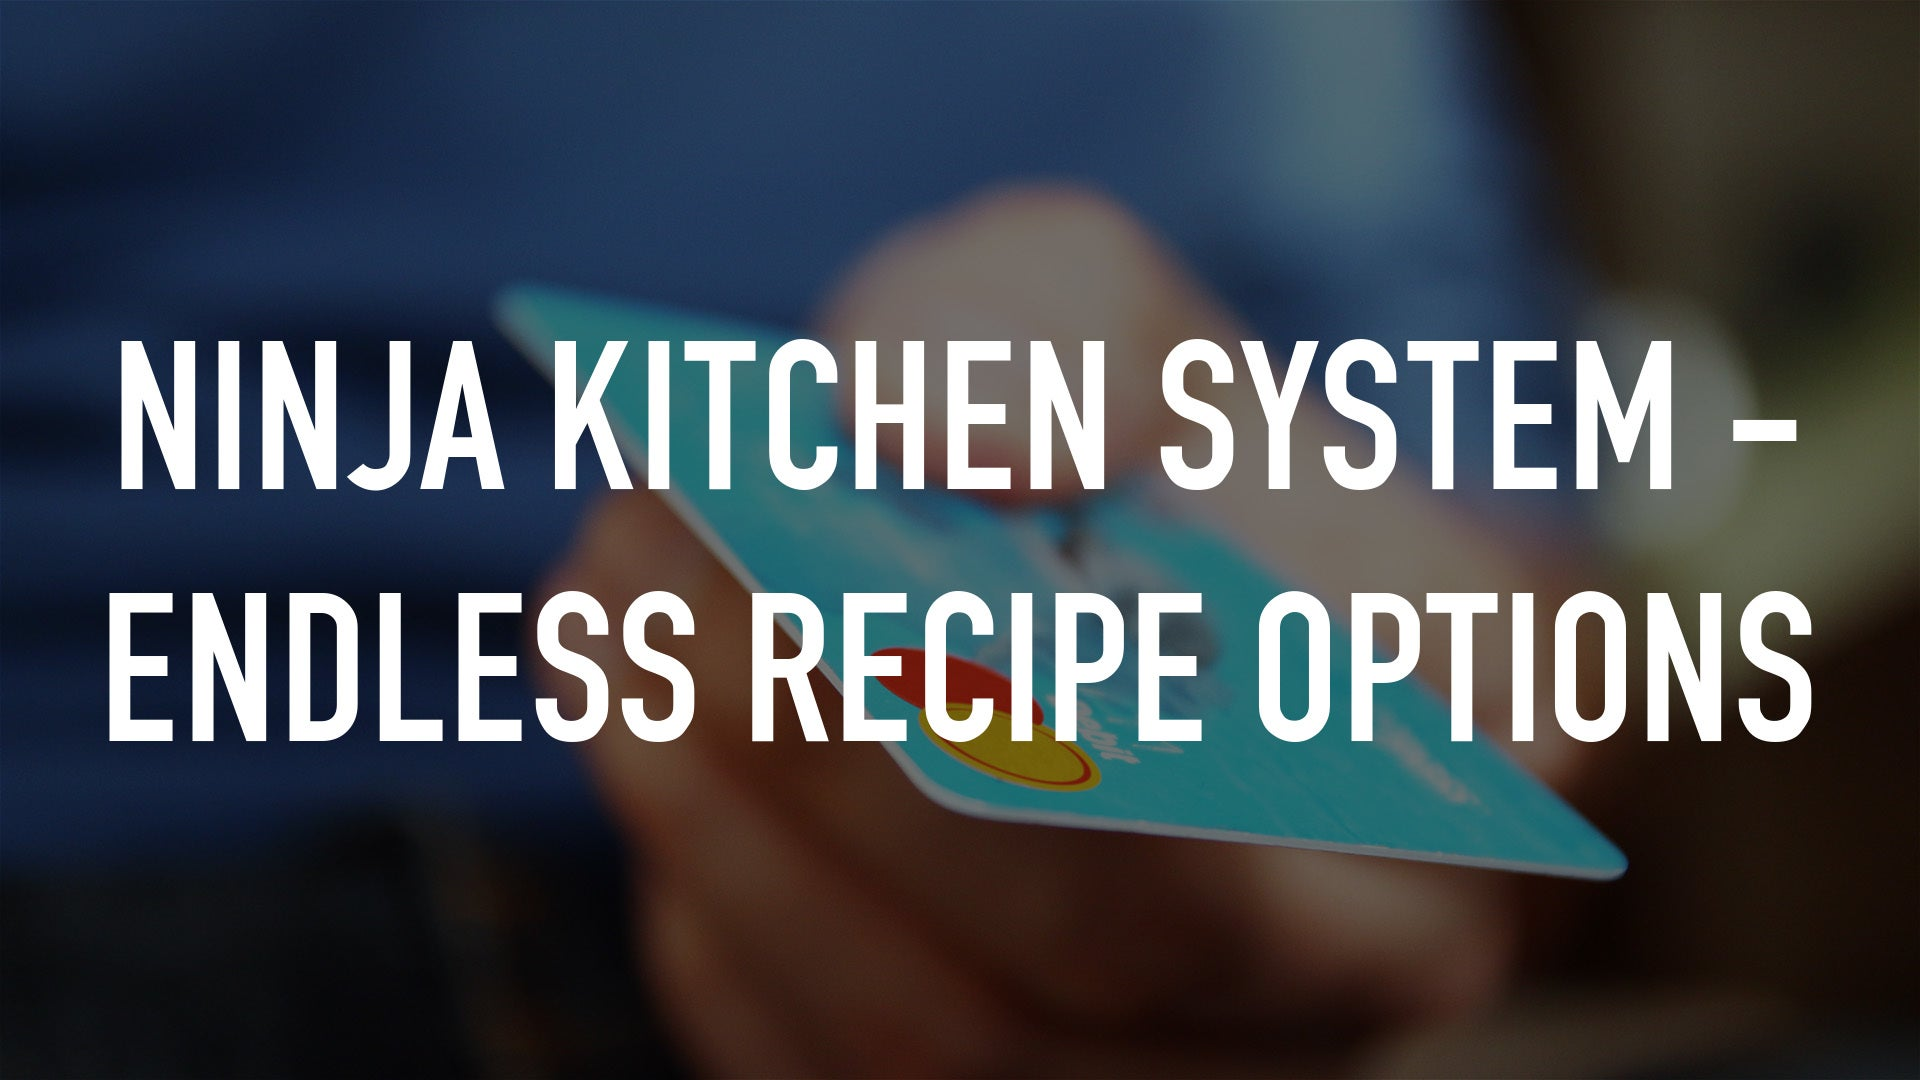 Ninja Kitchen System - Endless Recipe Options